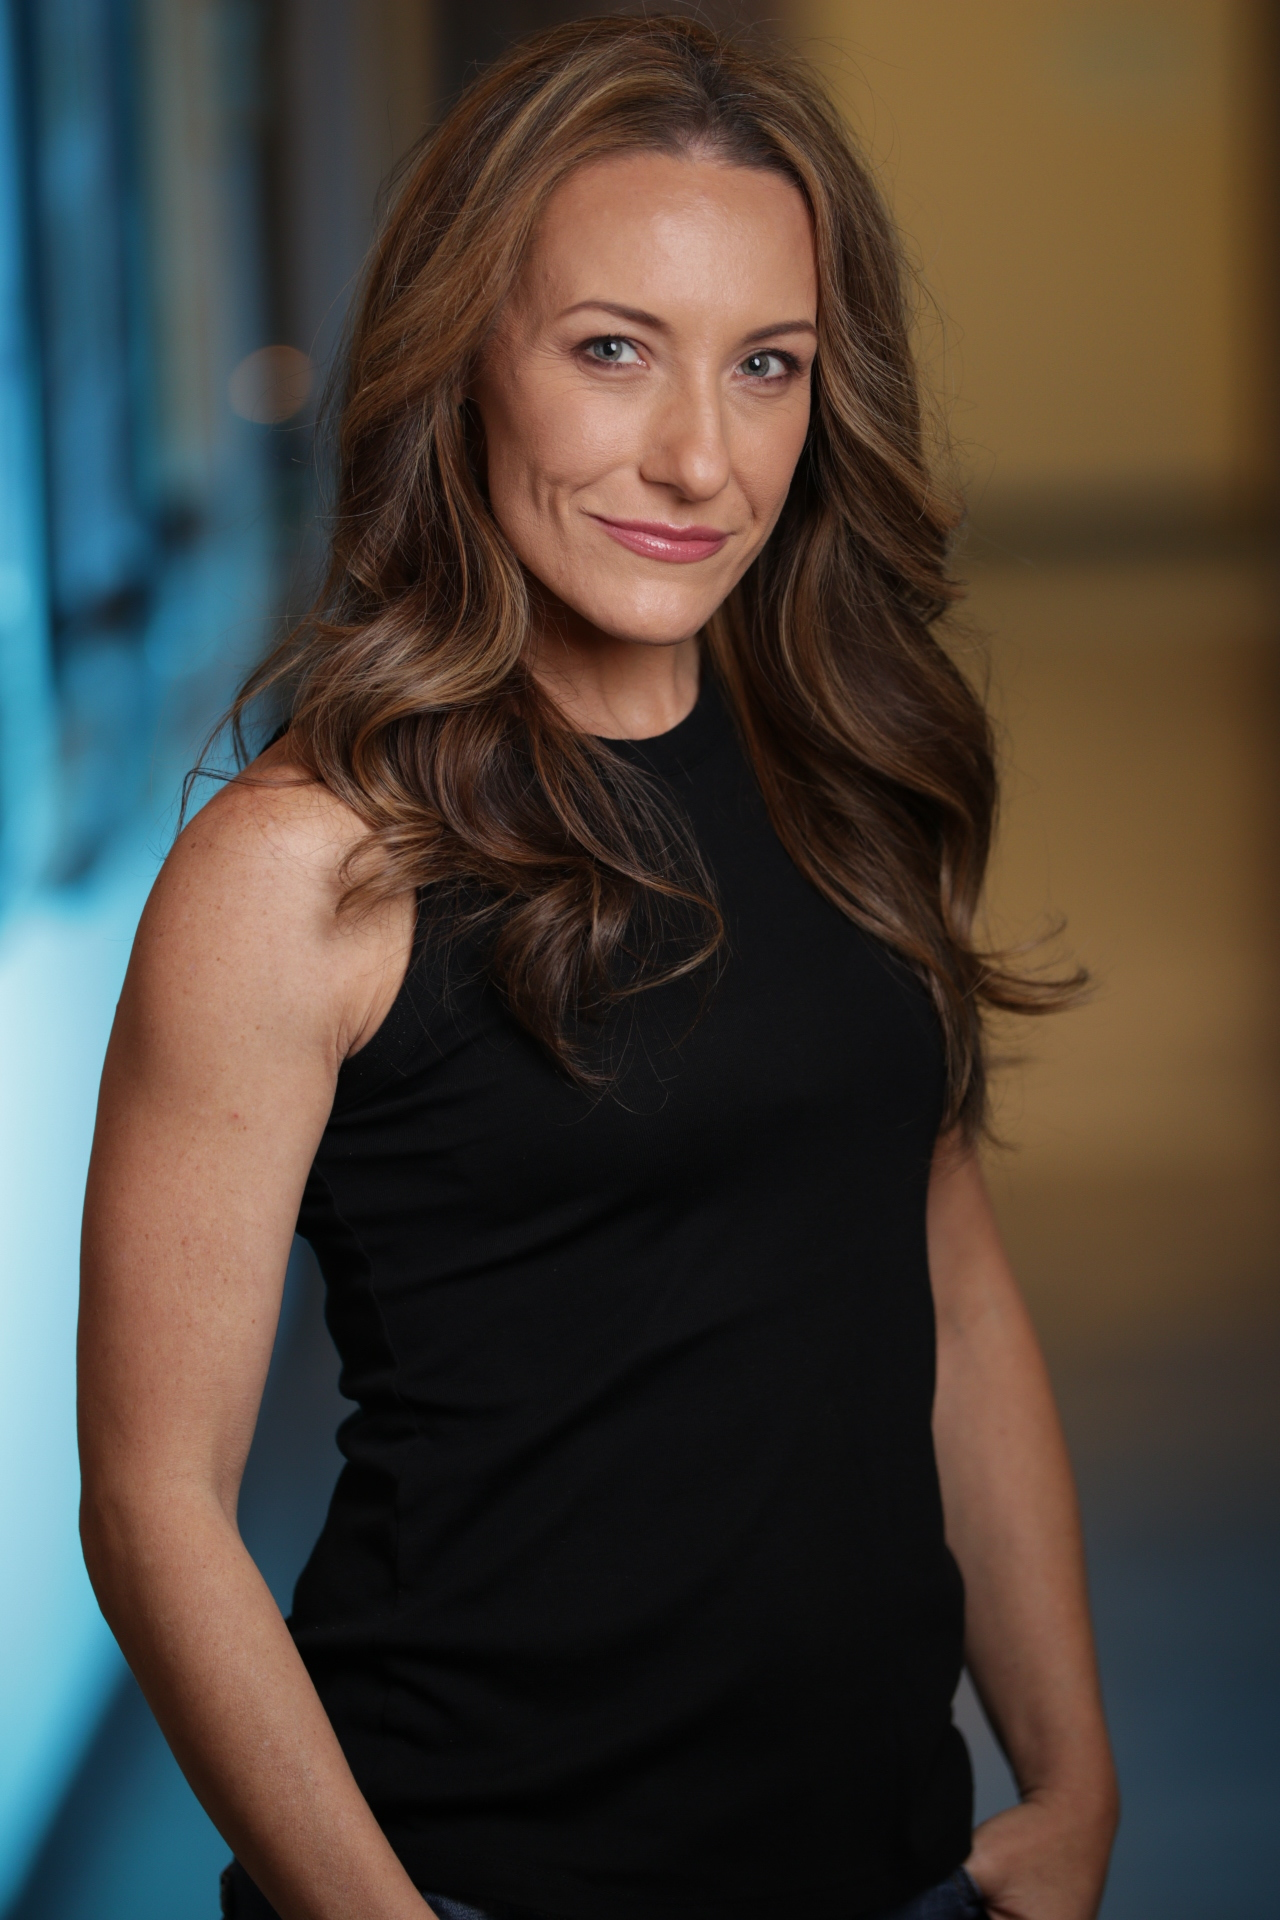 Founder/Producer/Actress- Melissa Lowe